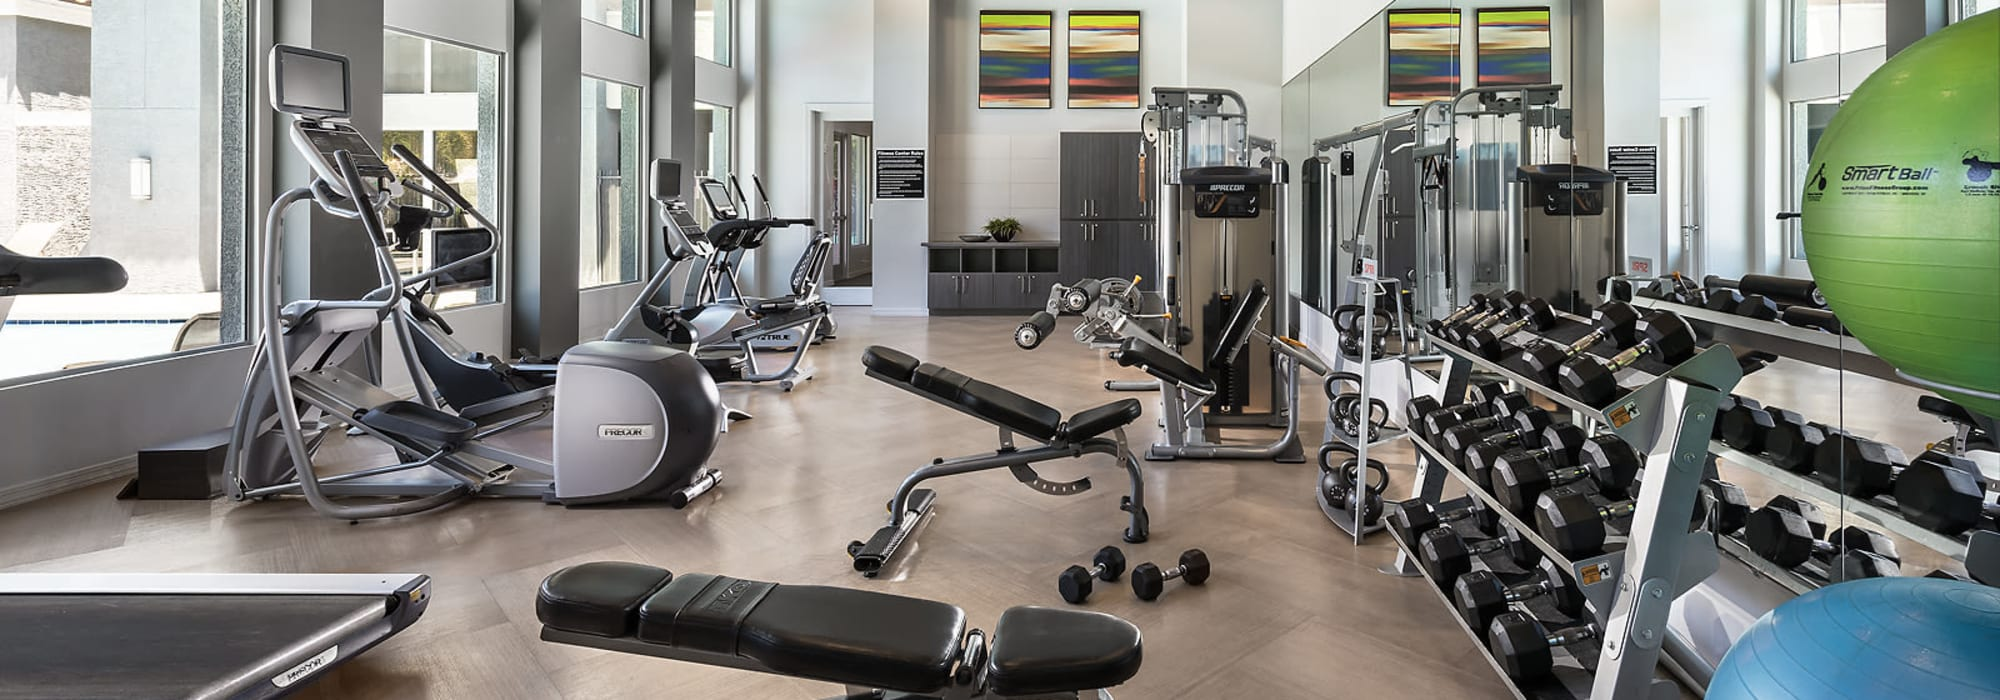 Fitness Center at Avenue 25 Apartments